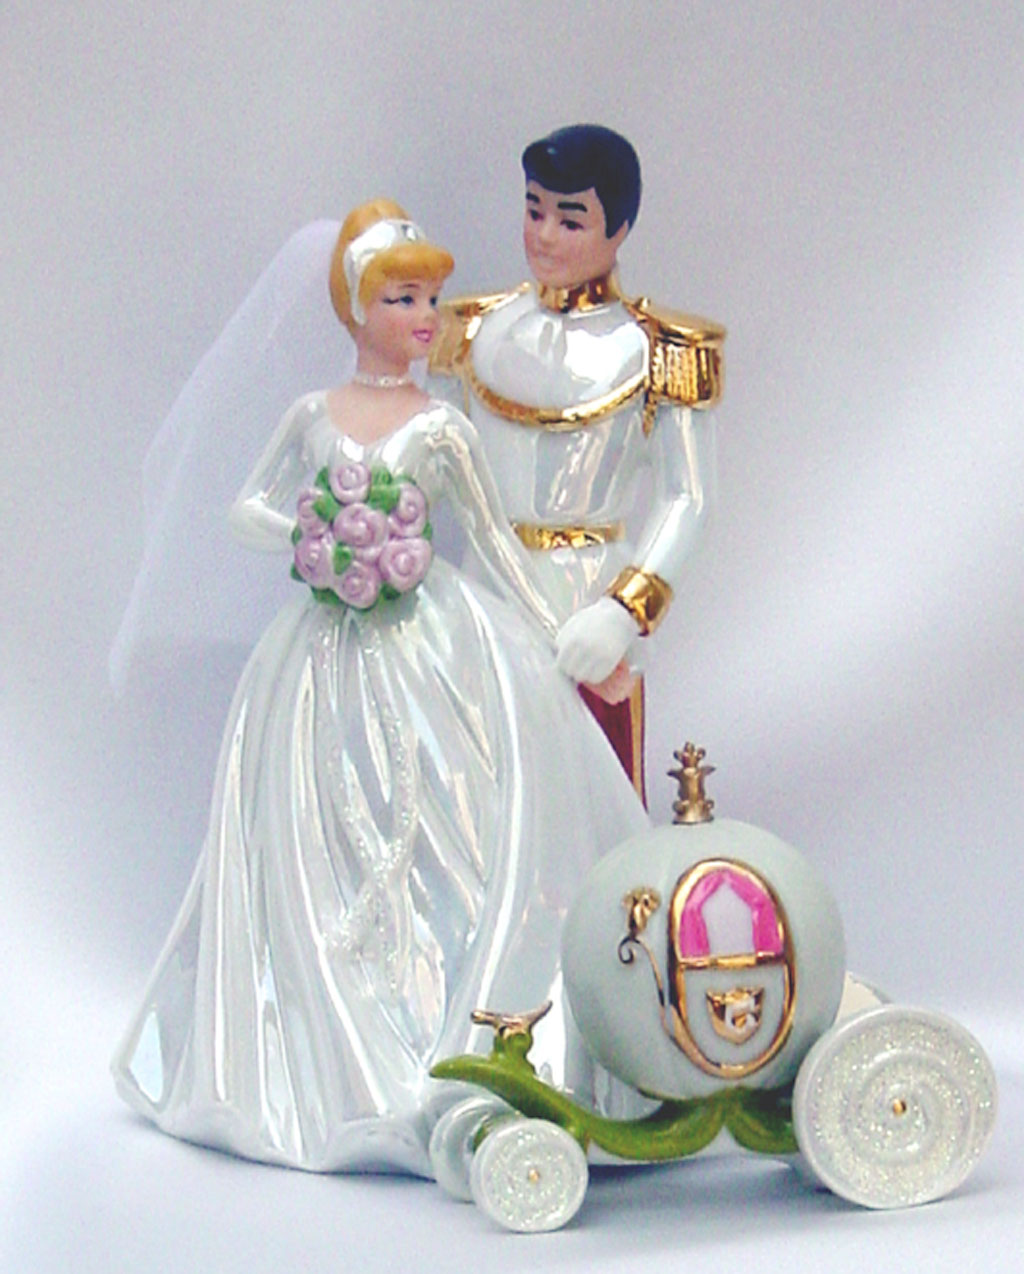 cinderella wedding cake topper disney cinderella wedding cake topper wedding cake cake 2954